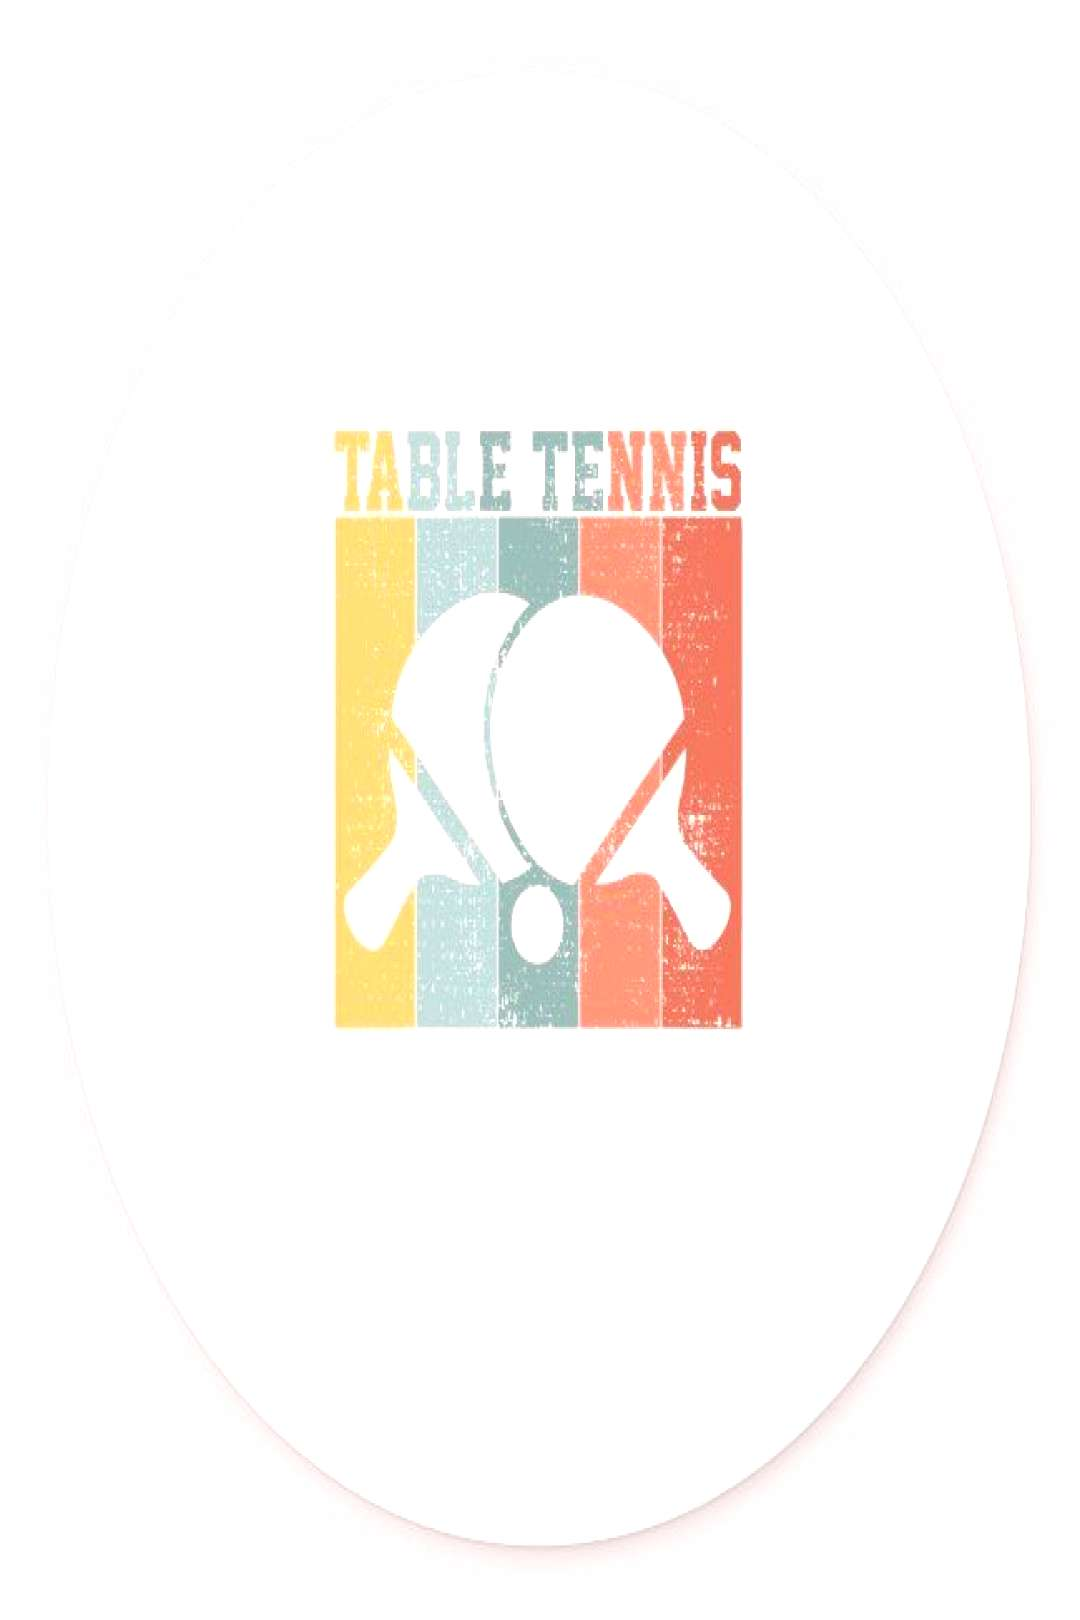 Retro Table Tennis T-Shirt Ping Pong Gift Tee Tshi Classic Round Sticker